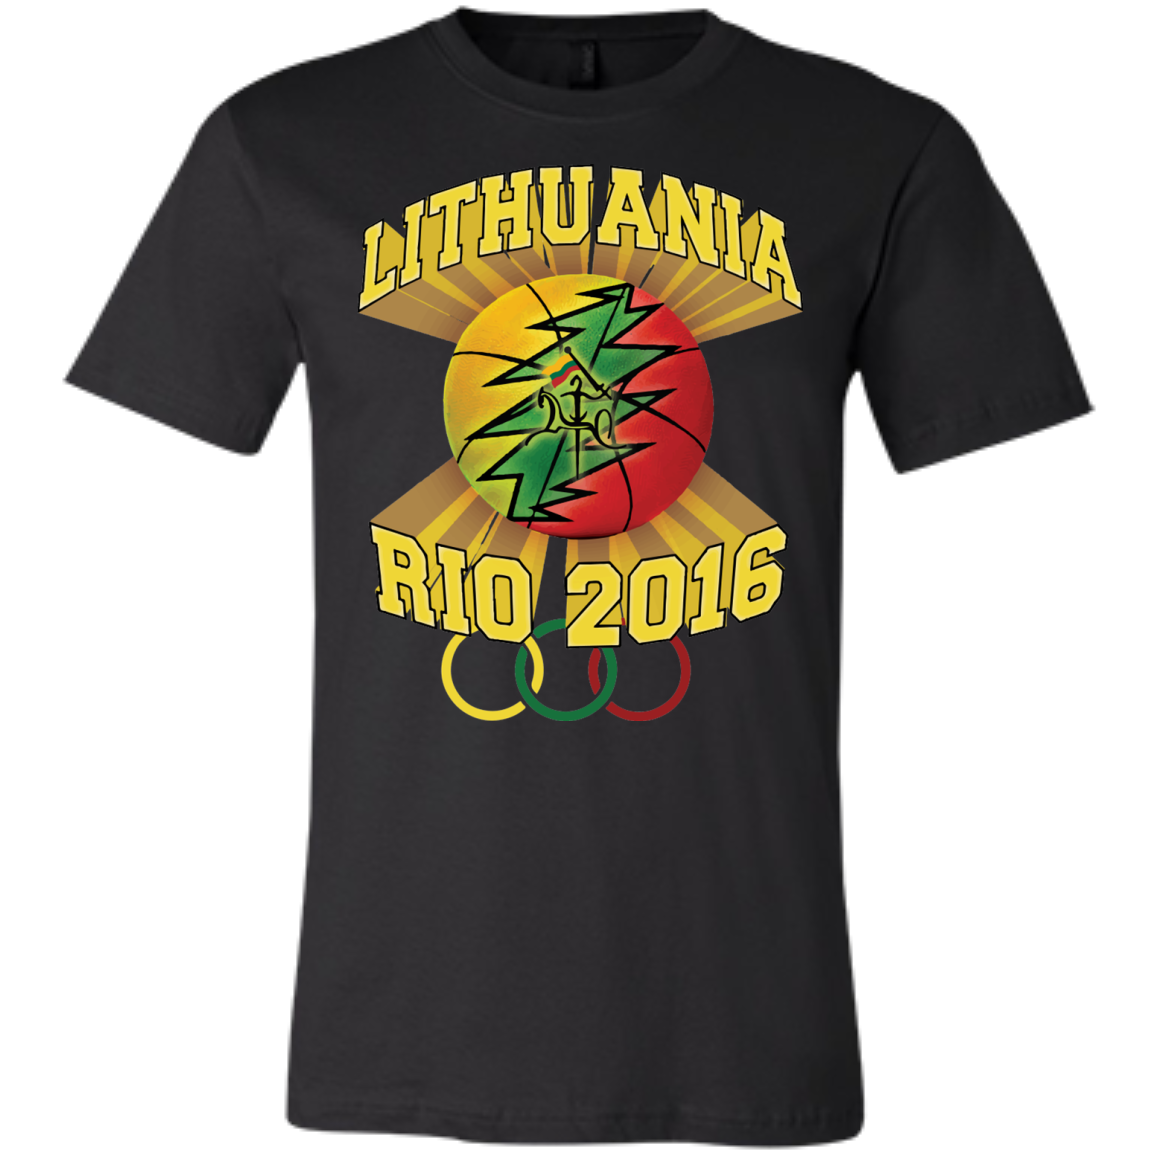 Rio Olympic Basketball -- Bella+Canvas Guys/Gals Short-Sleeve Tee T-Shirt